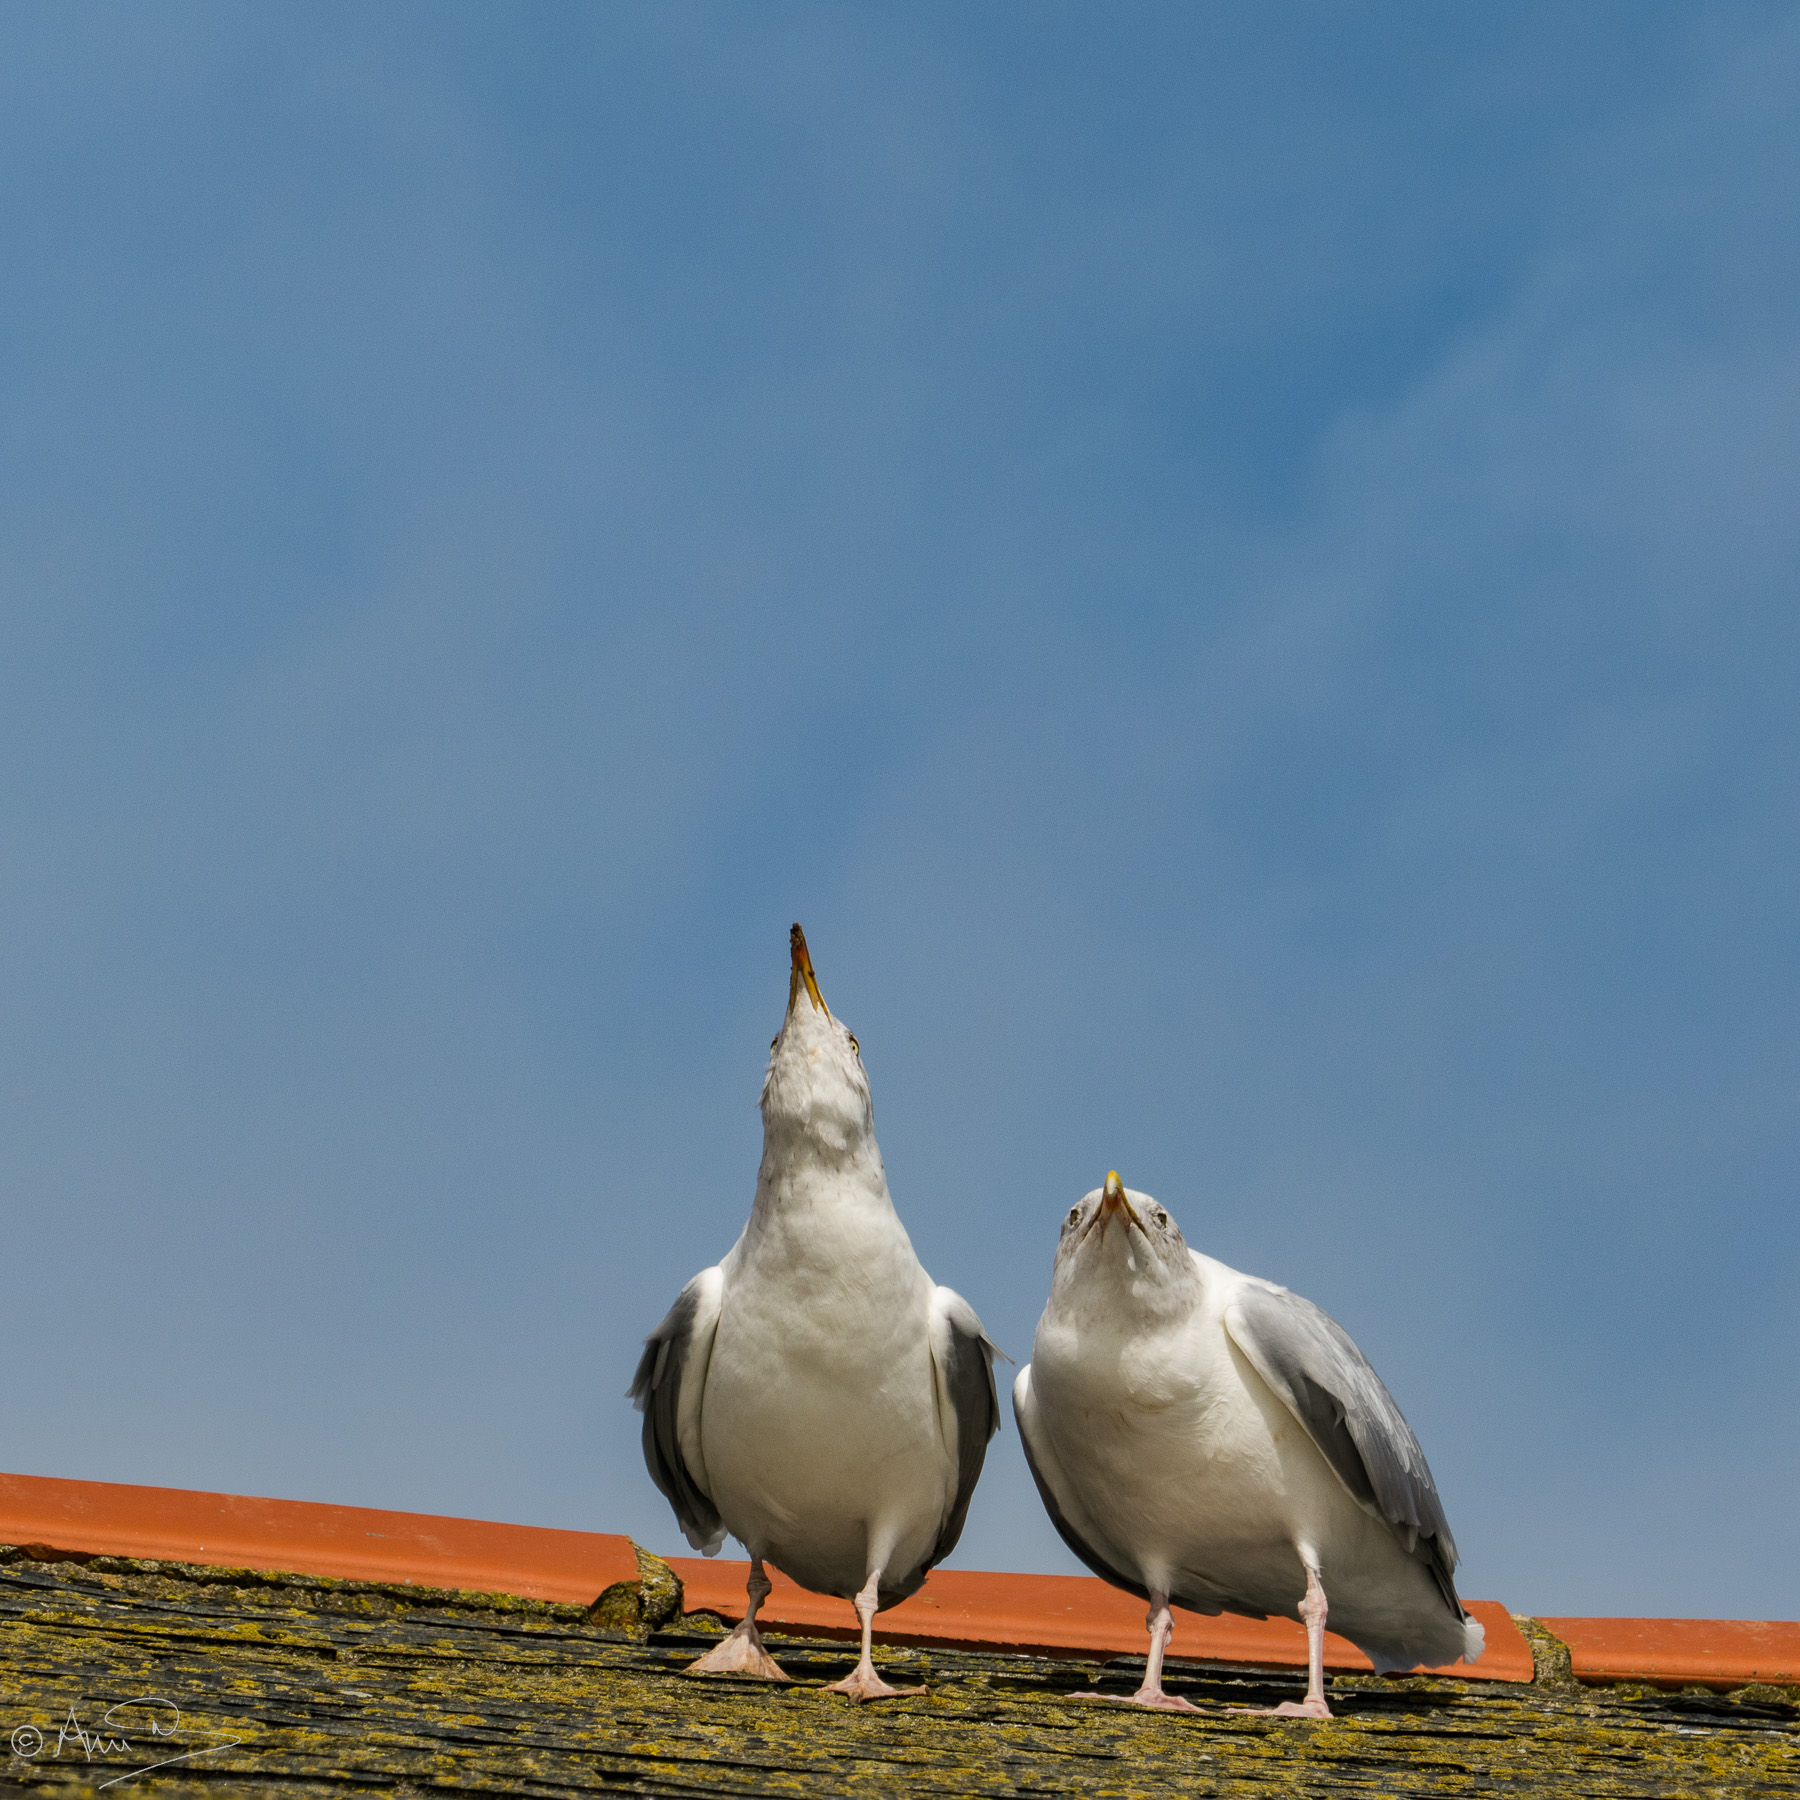 Gulls on roof.